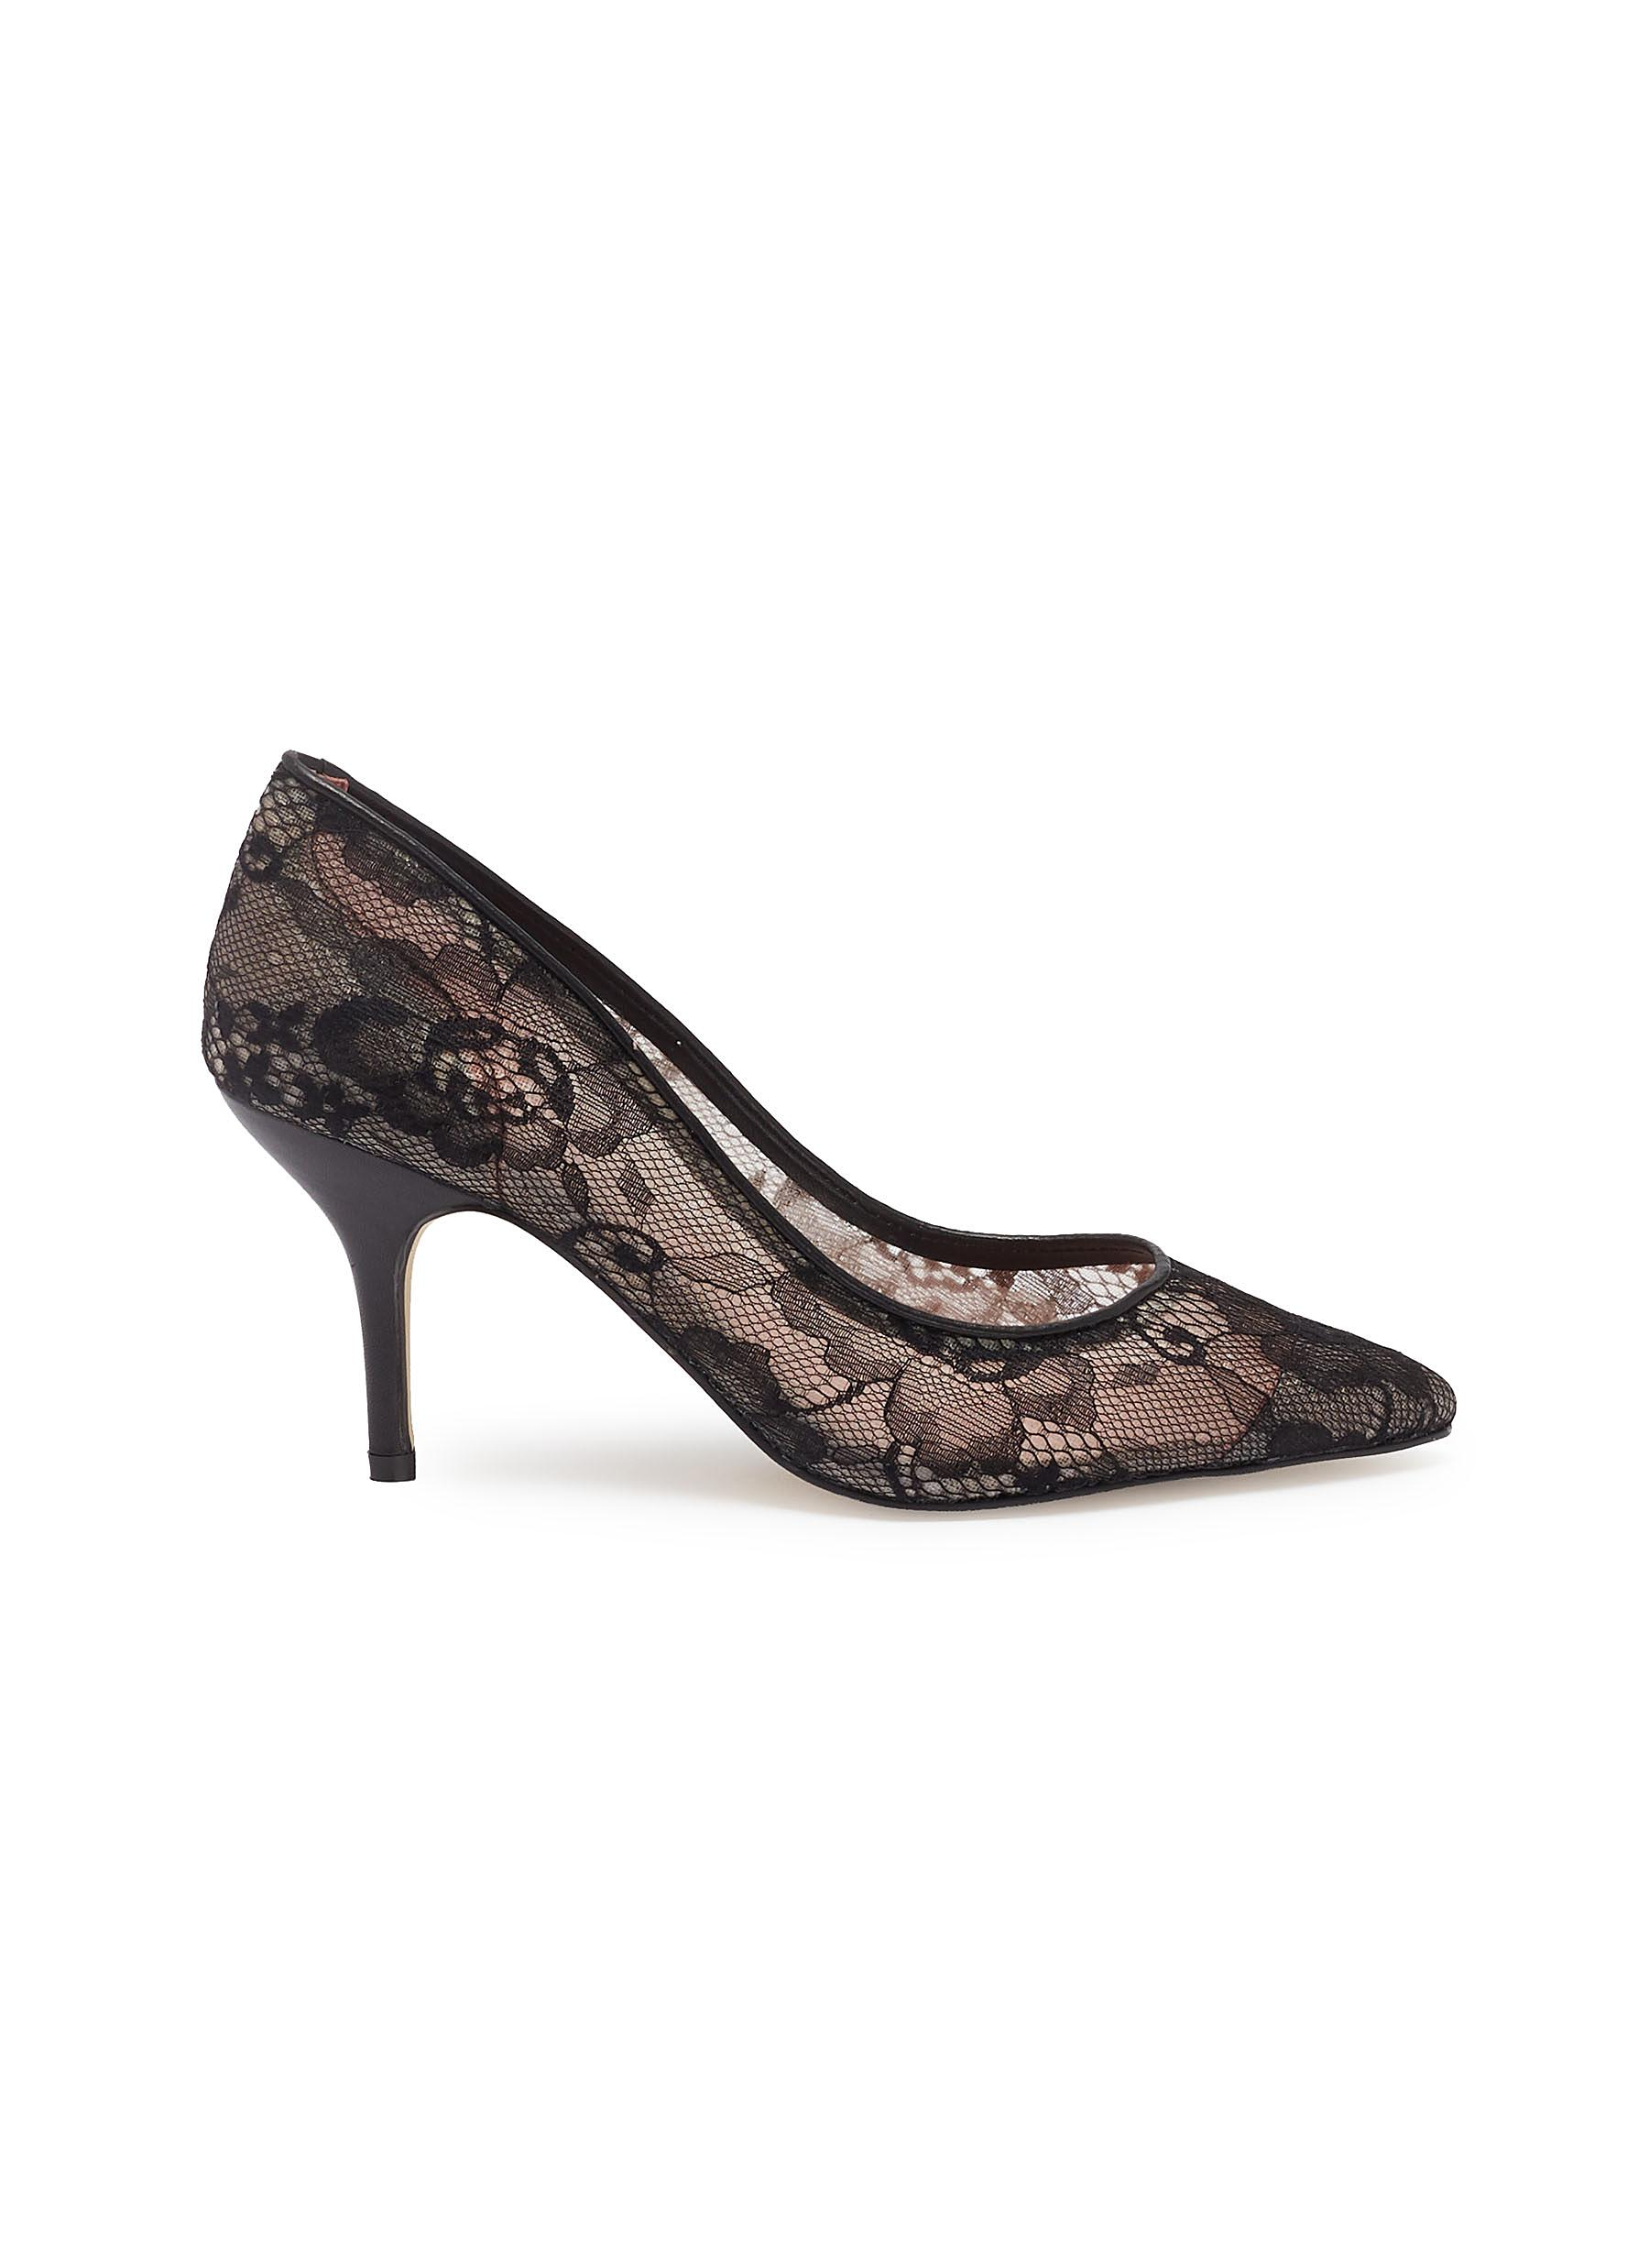 Sophia floral guipure lace pumps by Pedder Red